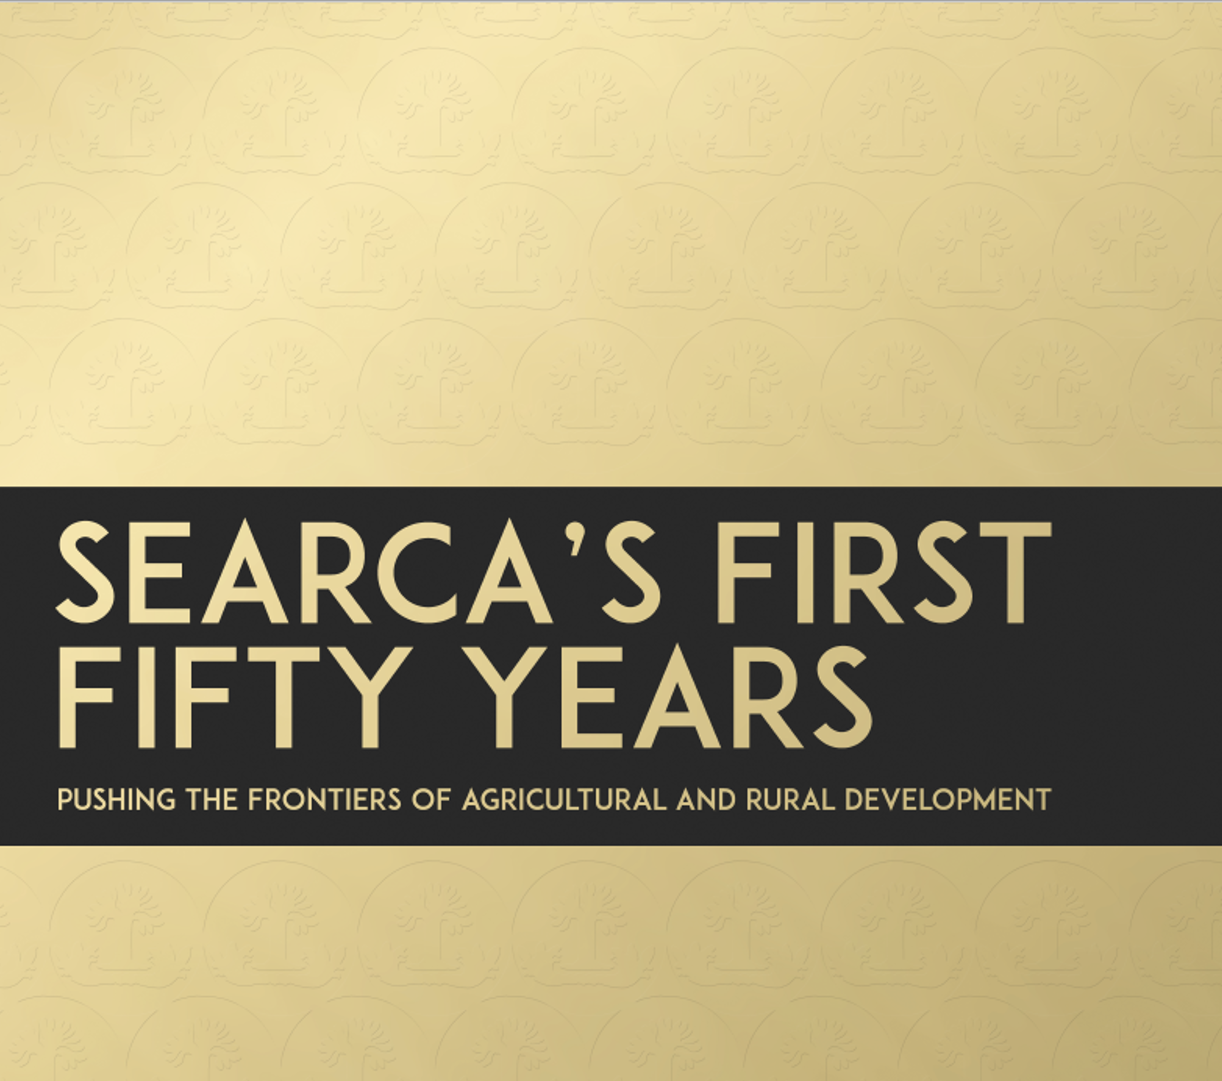 SEARCA's First 50 Years